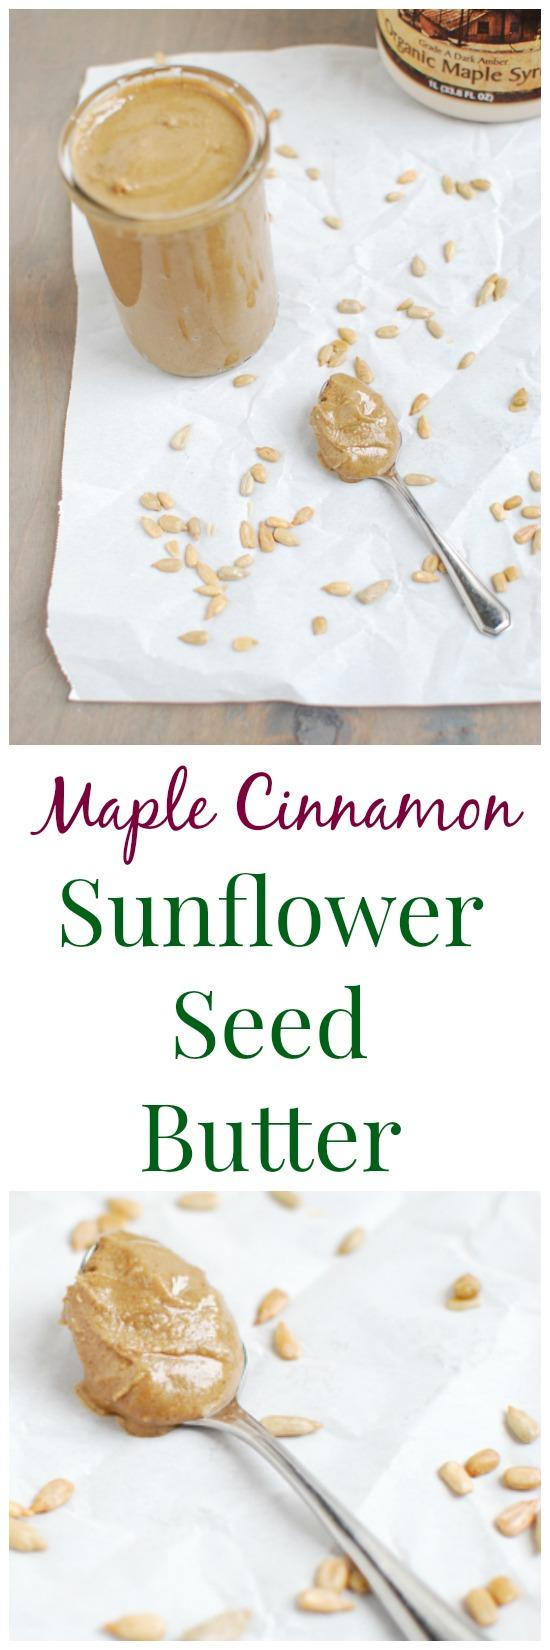 A fun way to change things up from traditional nut butter, this Maple Cinnamon Sunflower Seed Butter is allergy-friendly, delicious and easy to make at home!